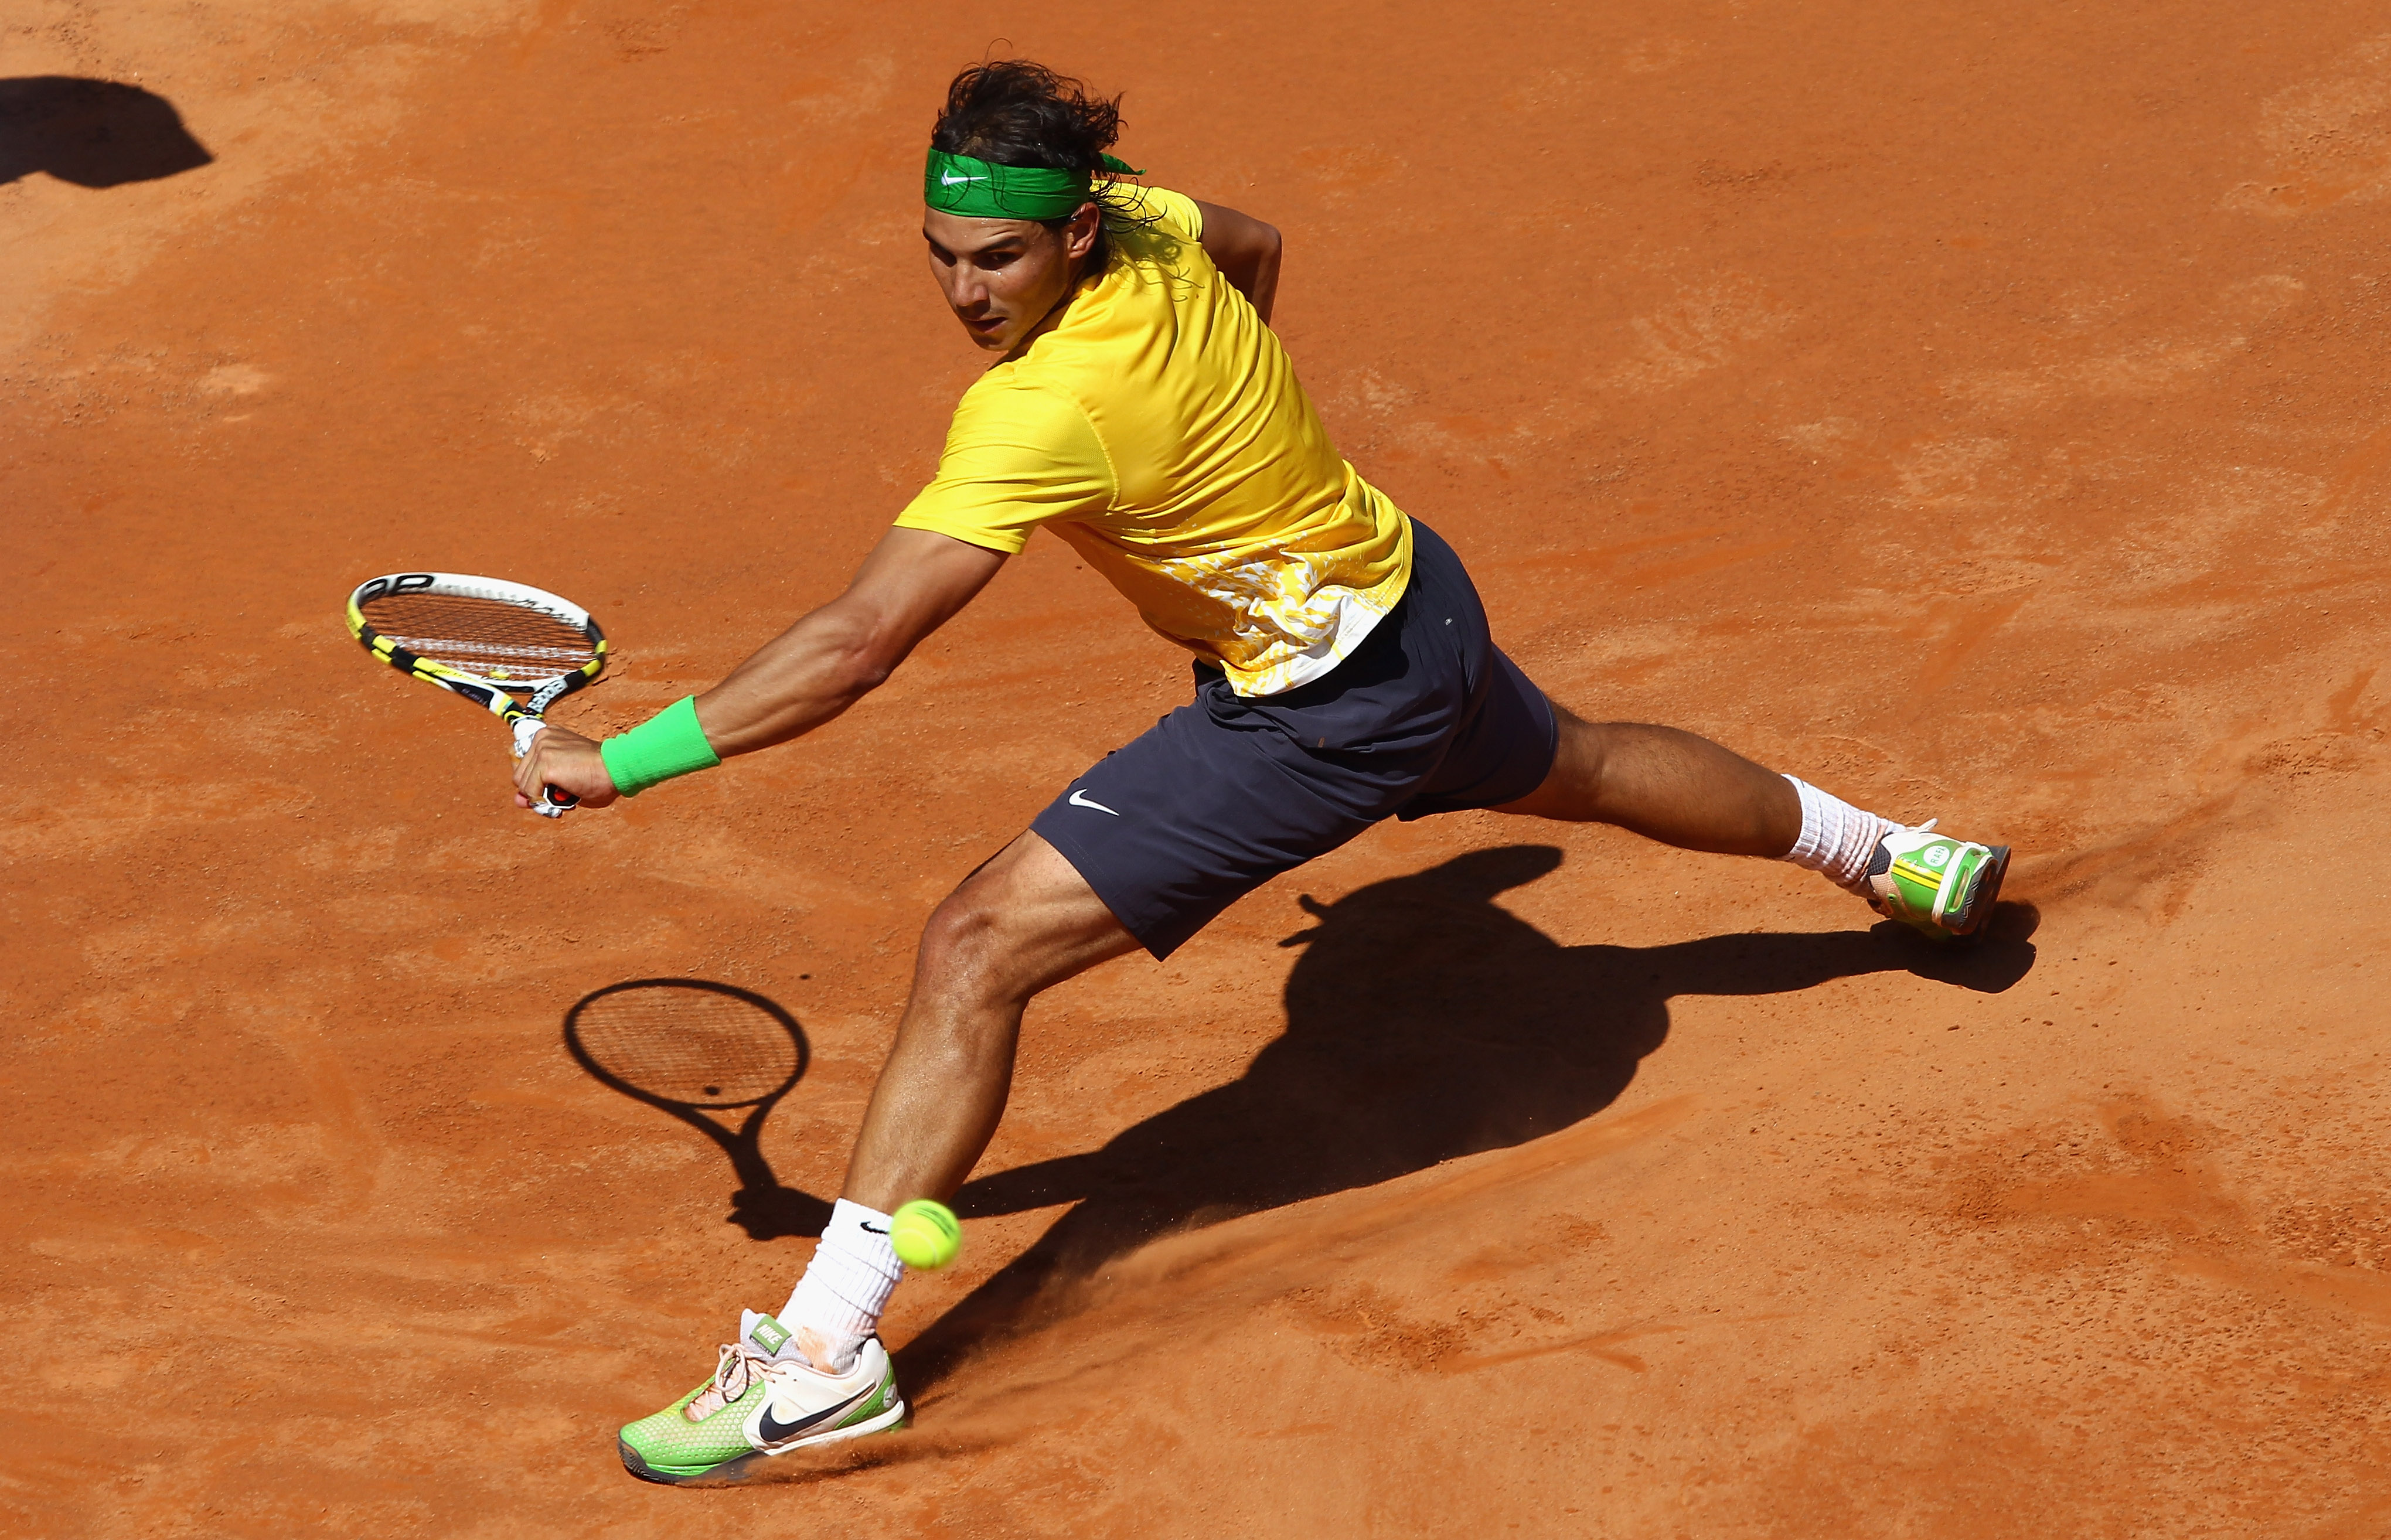 ROME, ITALY - MAY 13:  Rafael Nadal of Spain slides to play a backhand during his quarter final match against Marin Cilic of Croatia during day six of the Internazoinali BNL D'Italia at the Foro Italico Tennis Centre  on May 13, 2011 in Rome, Italy.  (Pho